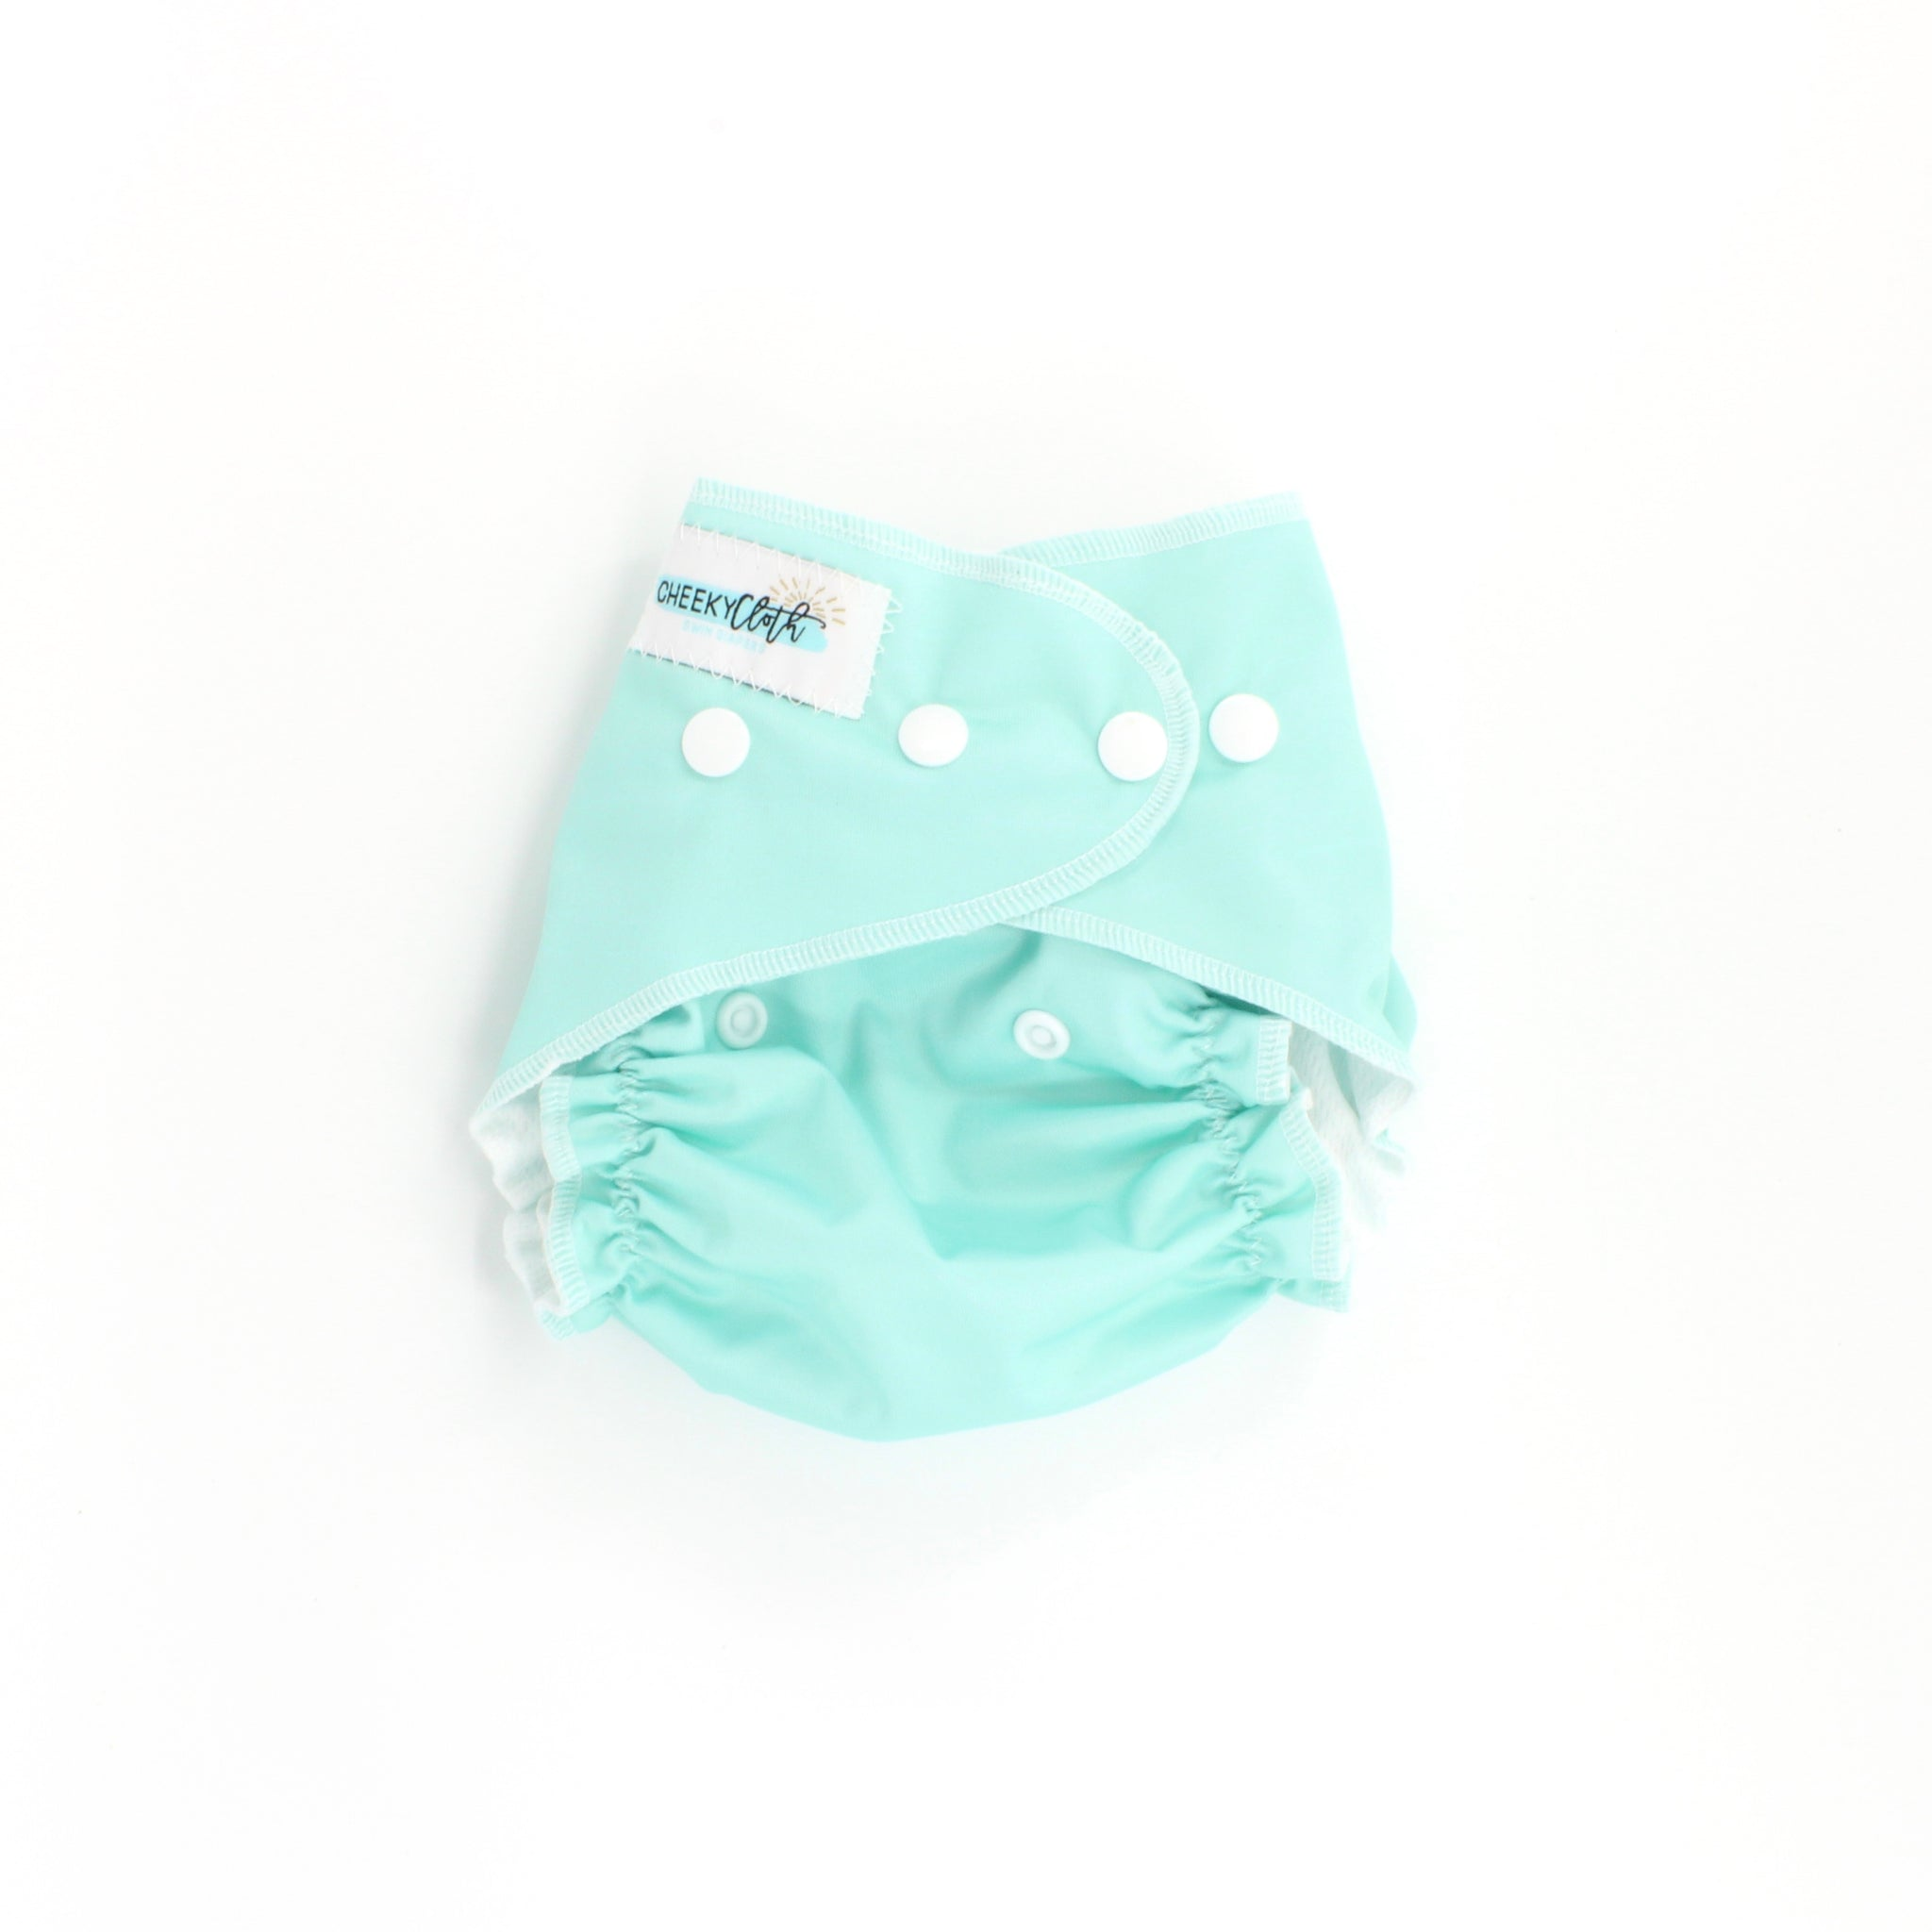 "Cheeky Cloth One Size Reusable Swim Diaper ""Tame Teal"""